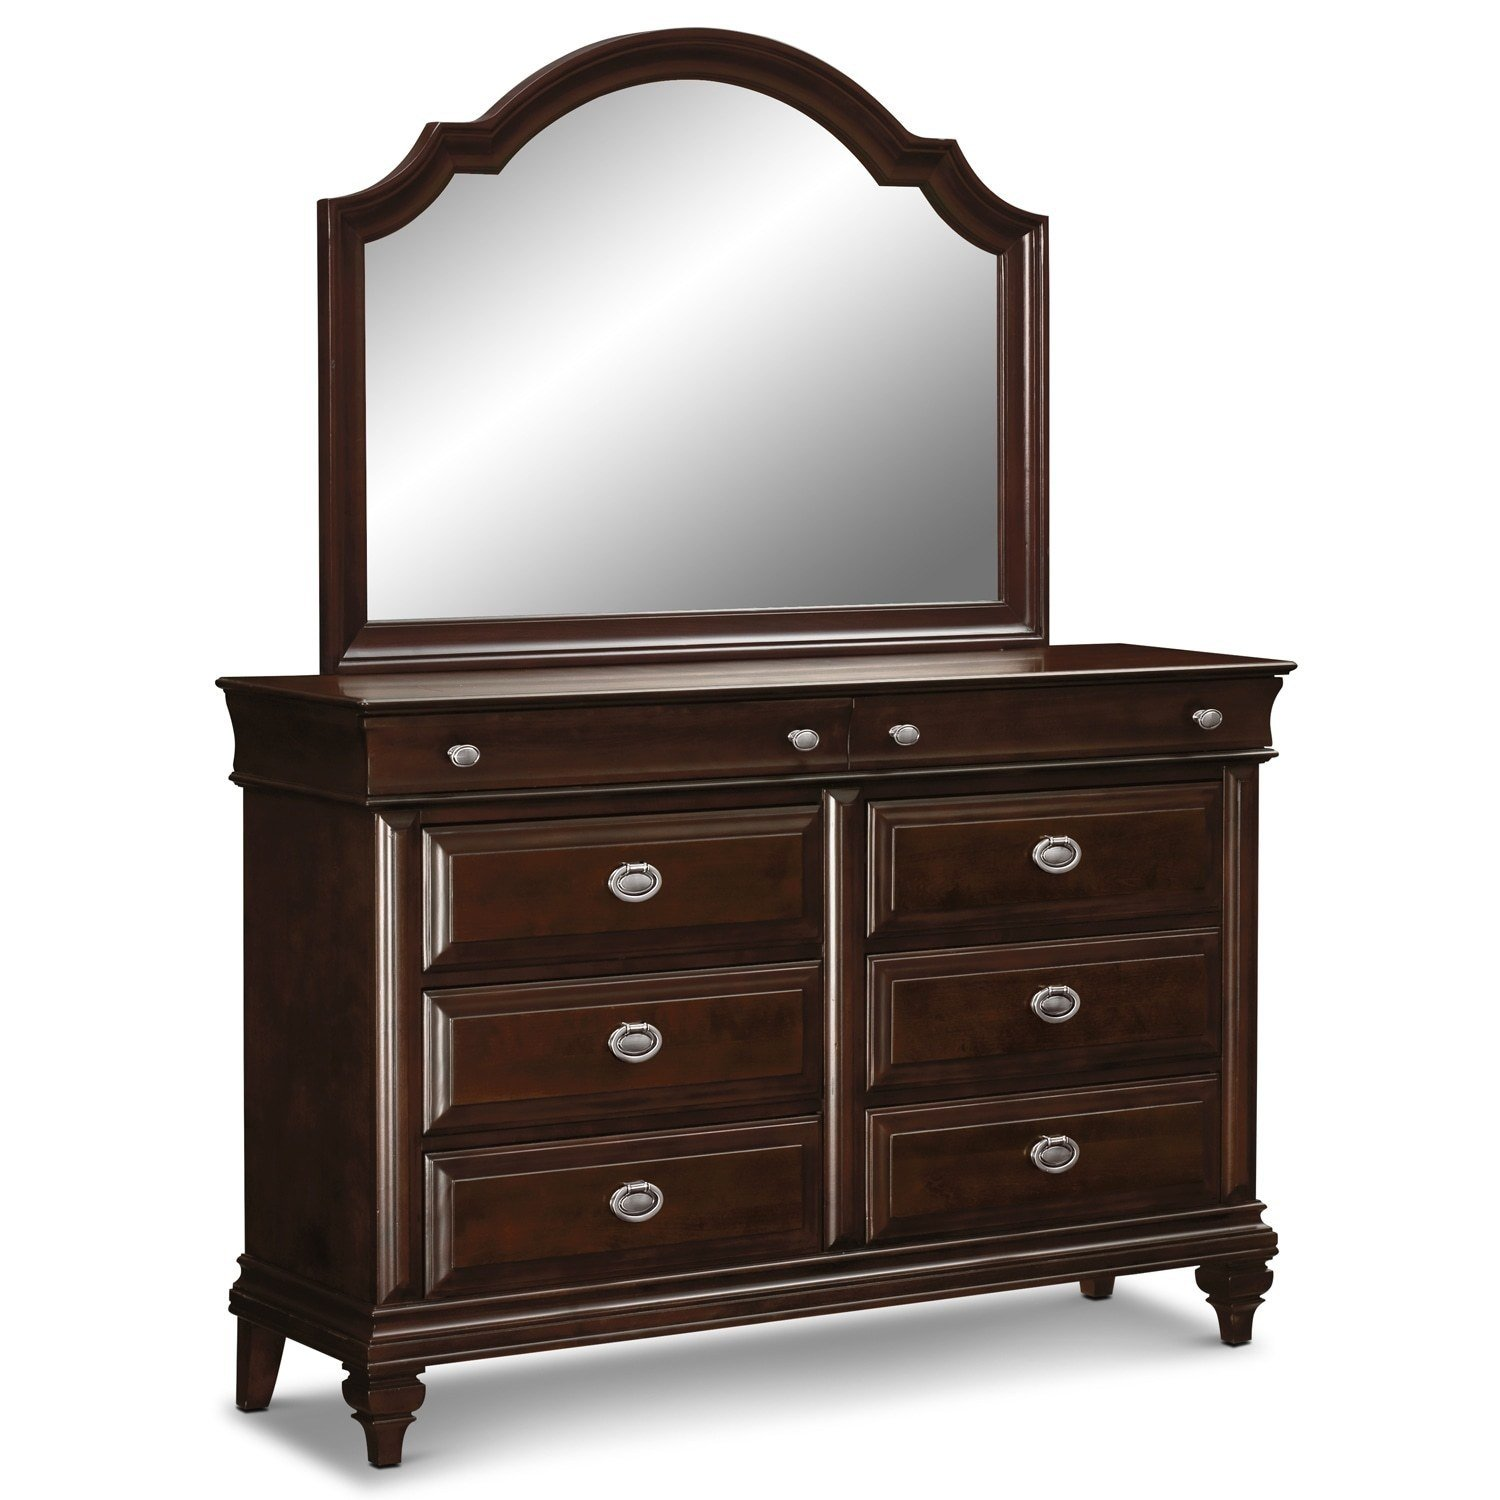 Best Manhattan Dresser And Mirror Cherry Value City Furniture With Pictures